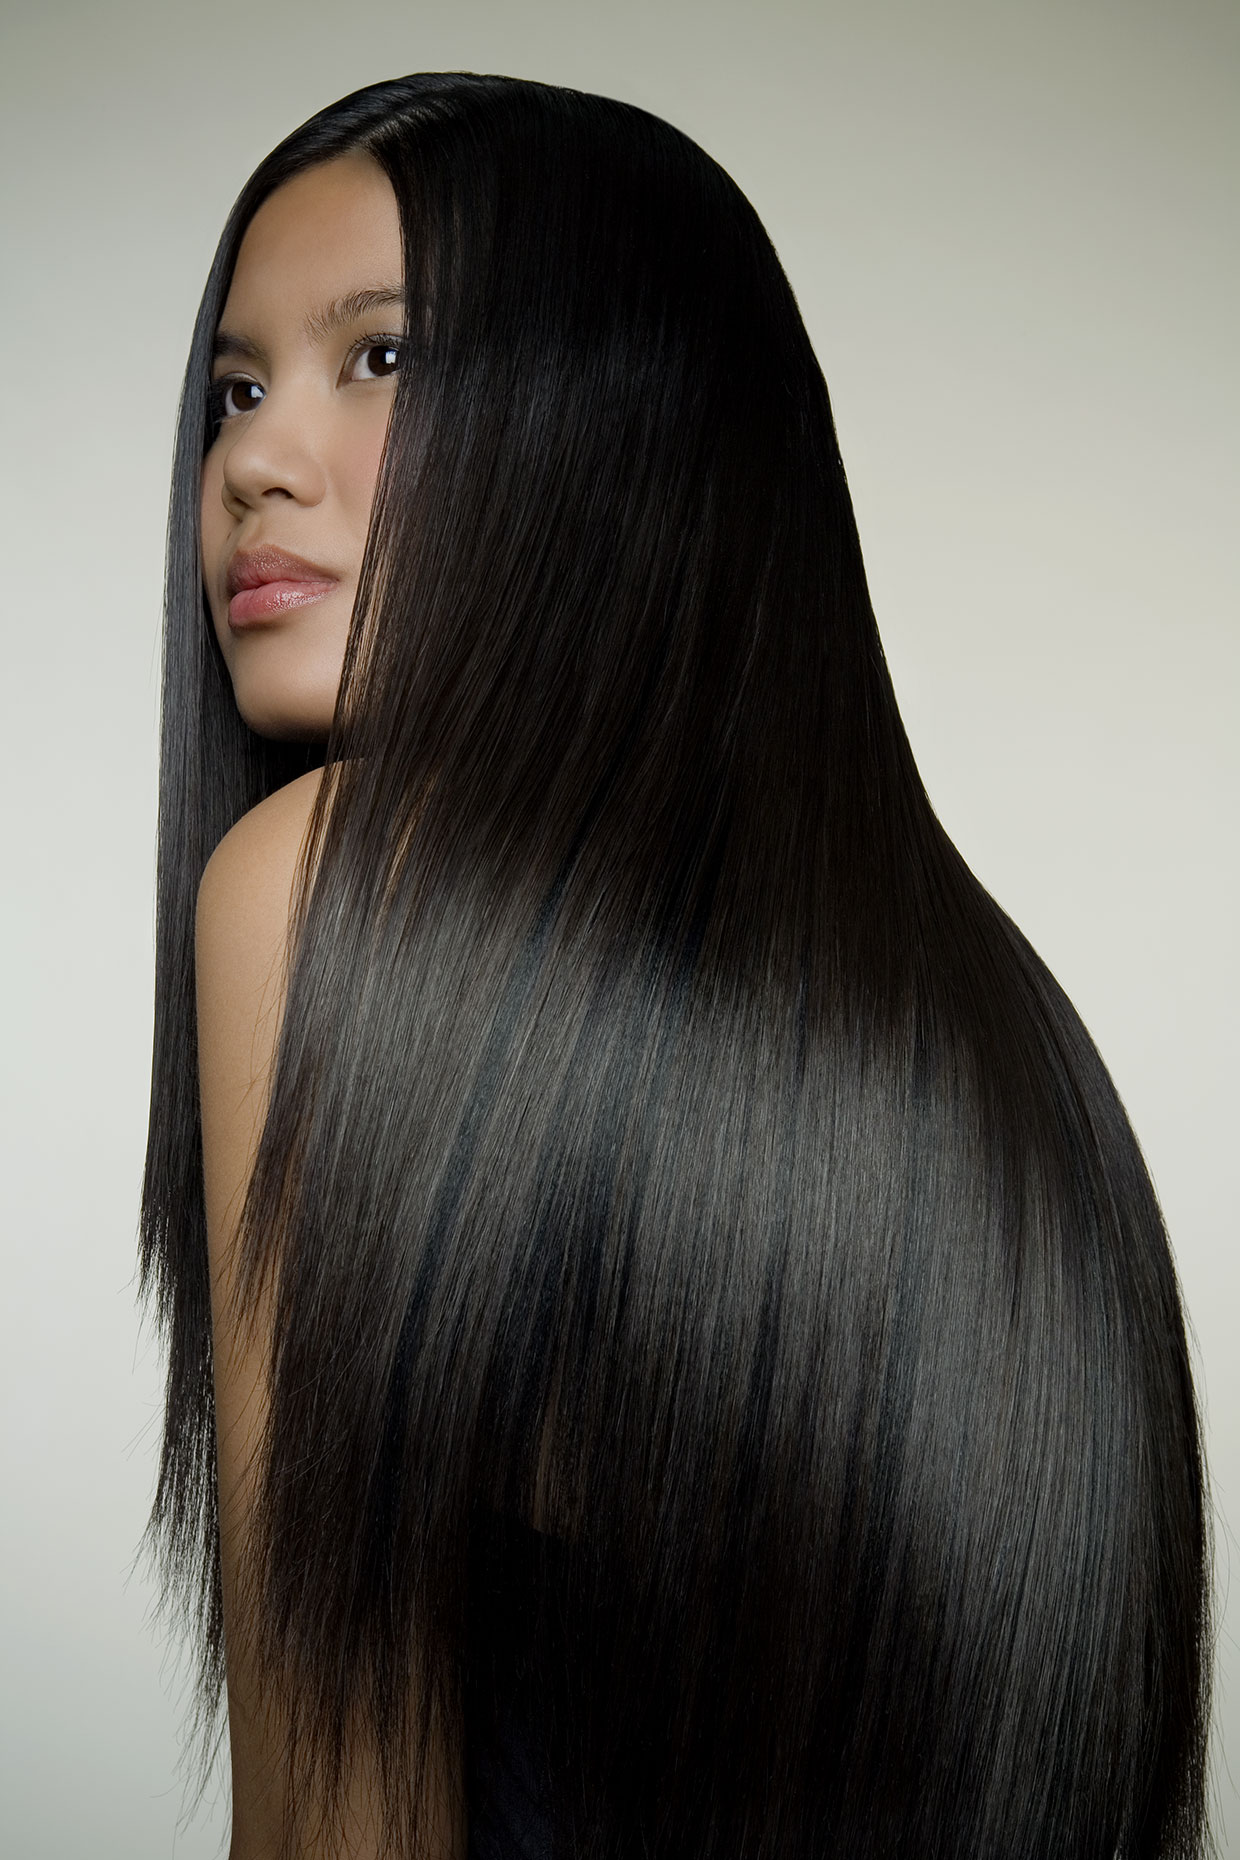 Asian woman with long shiny hair, profile.